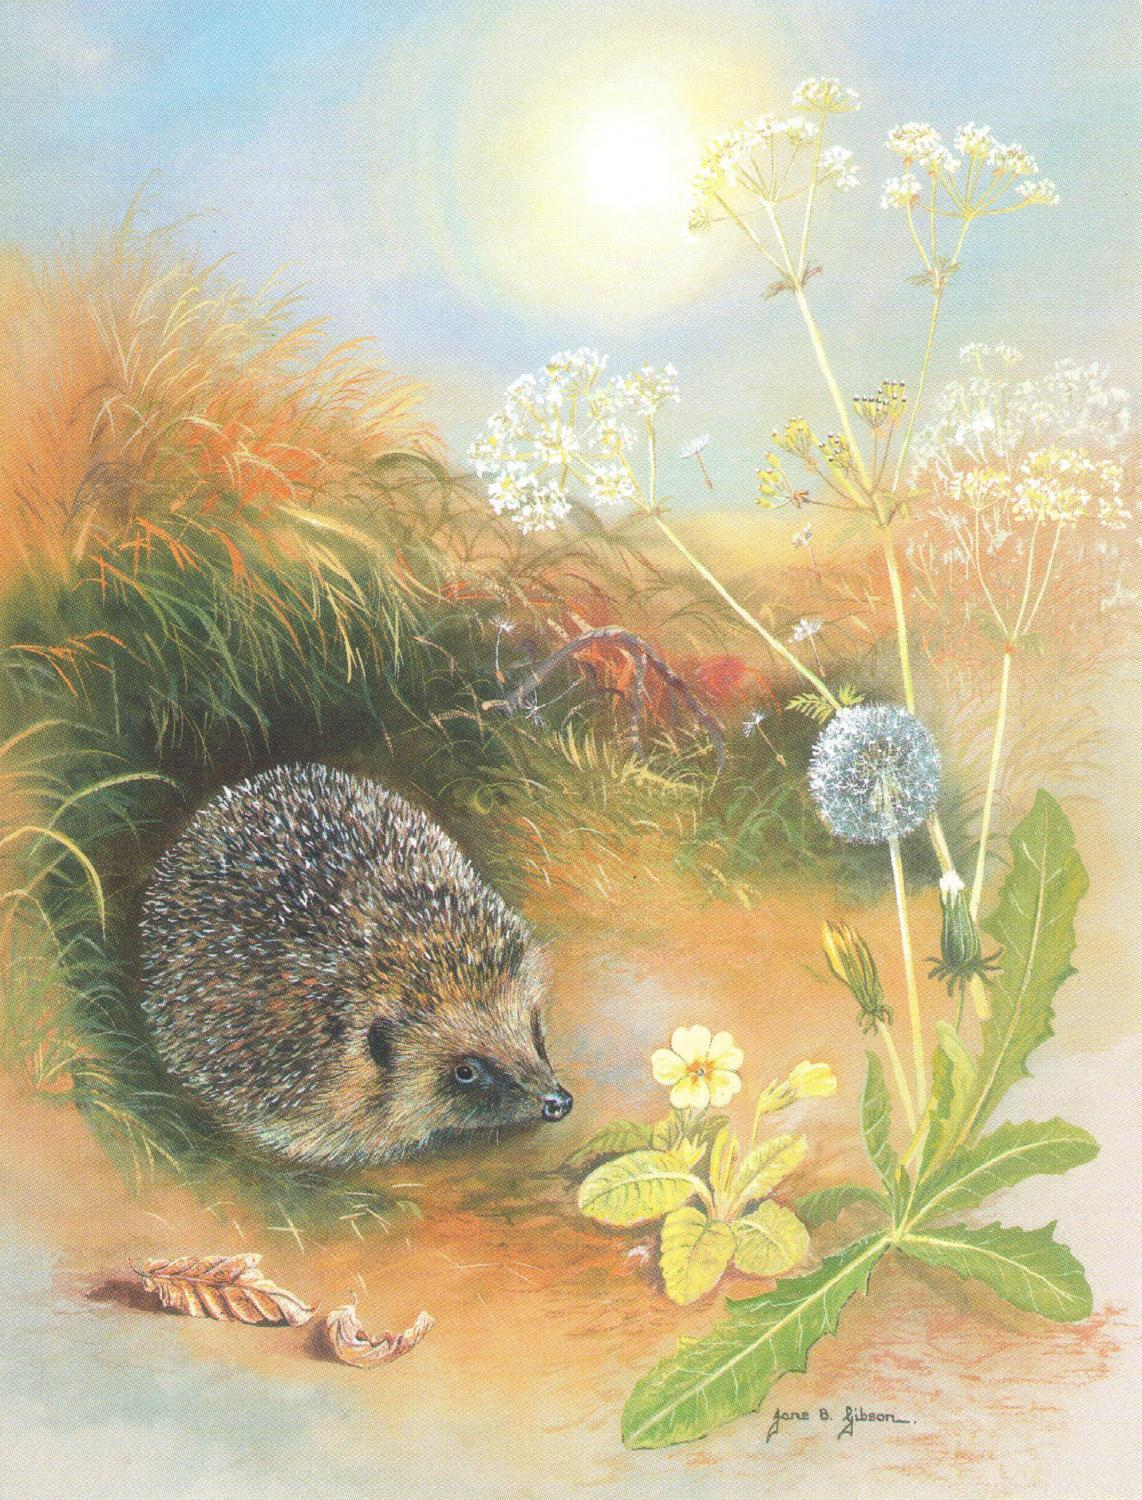 Pack of 5 Notecards - Hedgehog & Dandilion